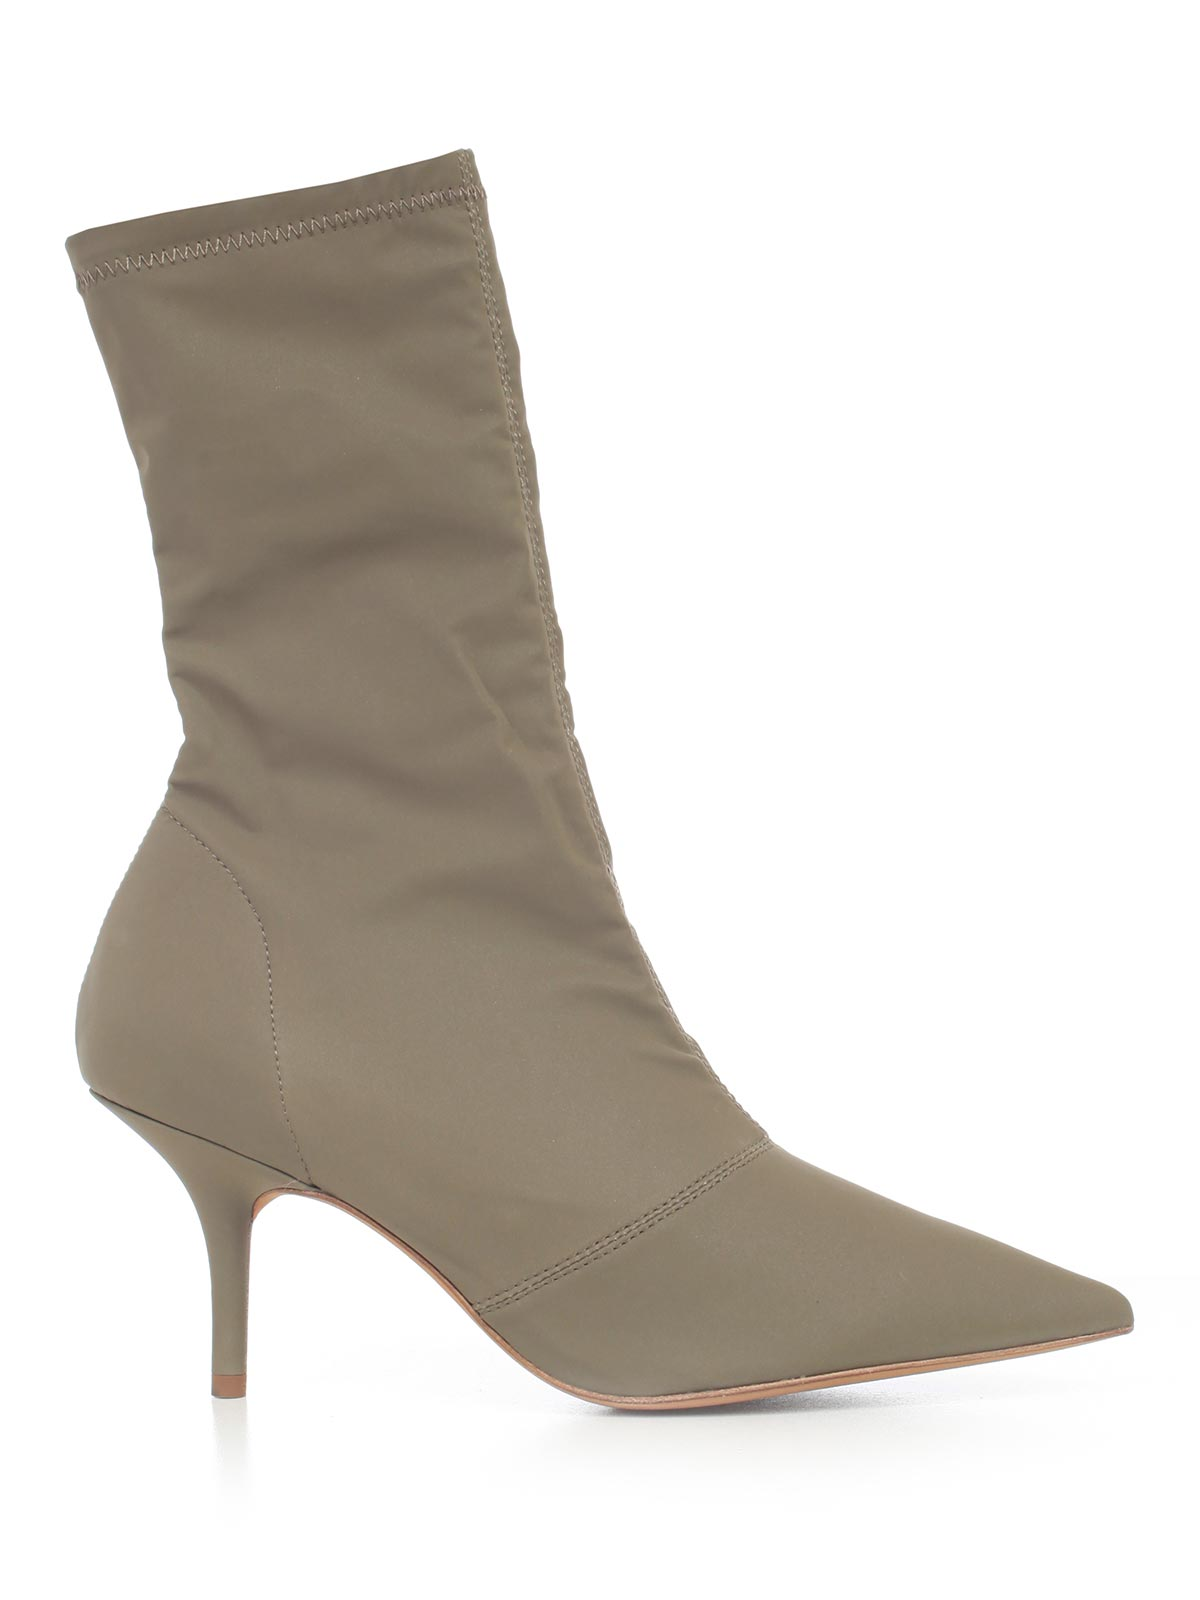 Yeezy YEEZY POINTED TOE STRETCH ANKLE BOOTS